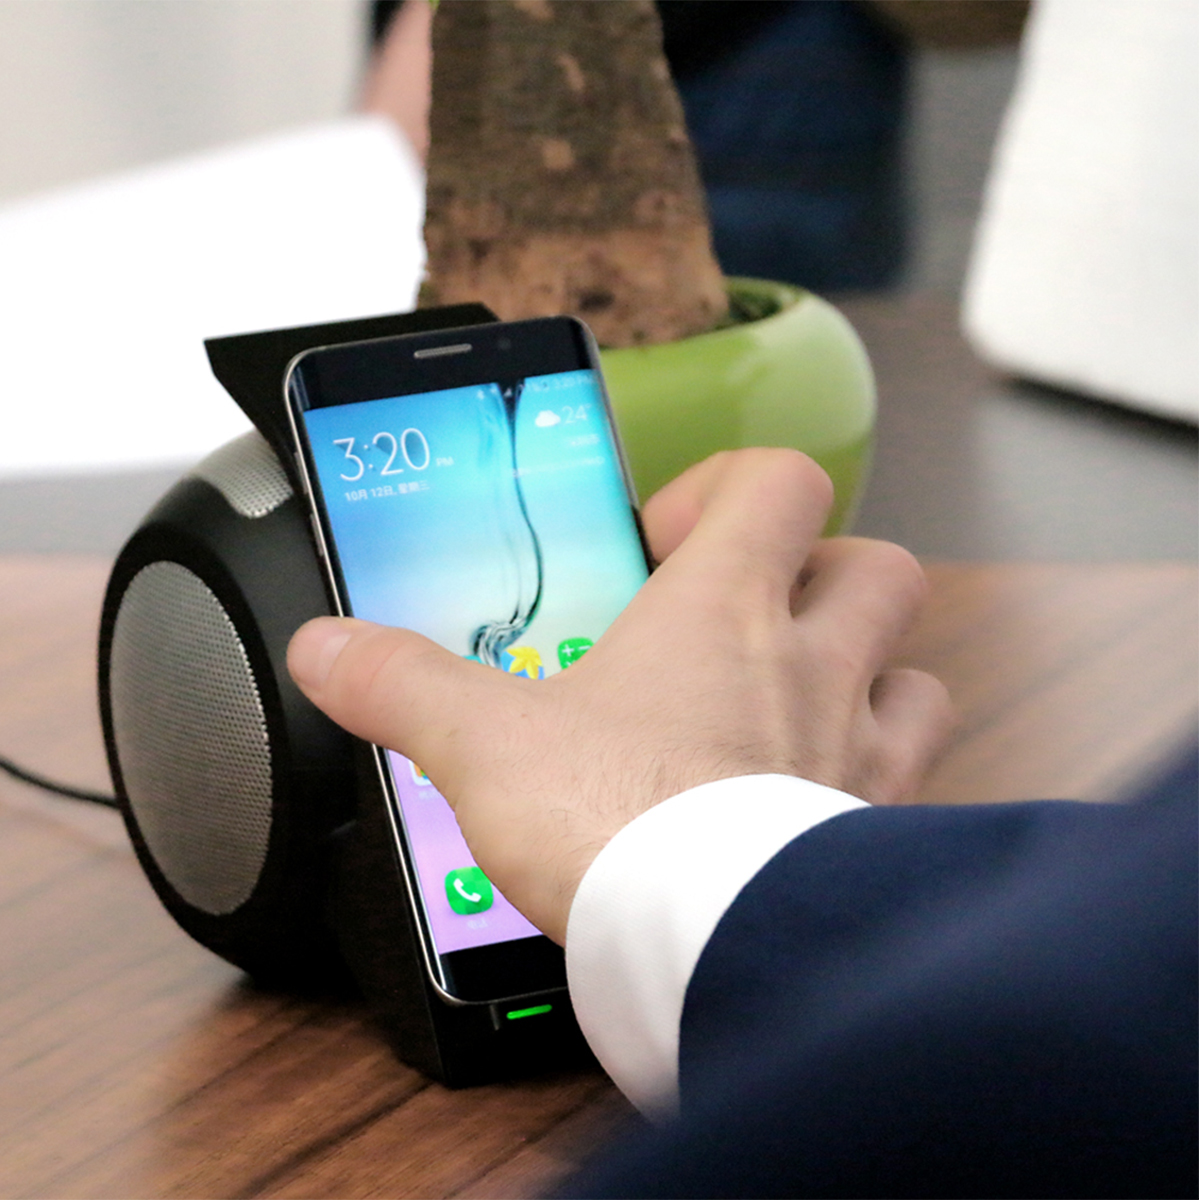 Bakeey 3 in 1 NFC Qi Wireless Charger bluetooth Speaker With LED Light For iPhone X 8Plus S8 Note 8